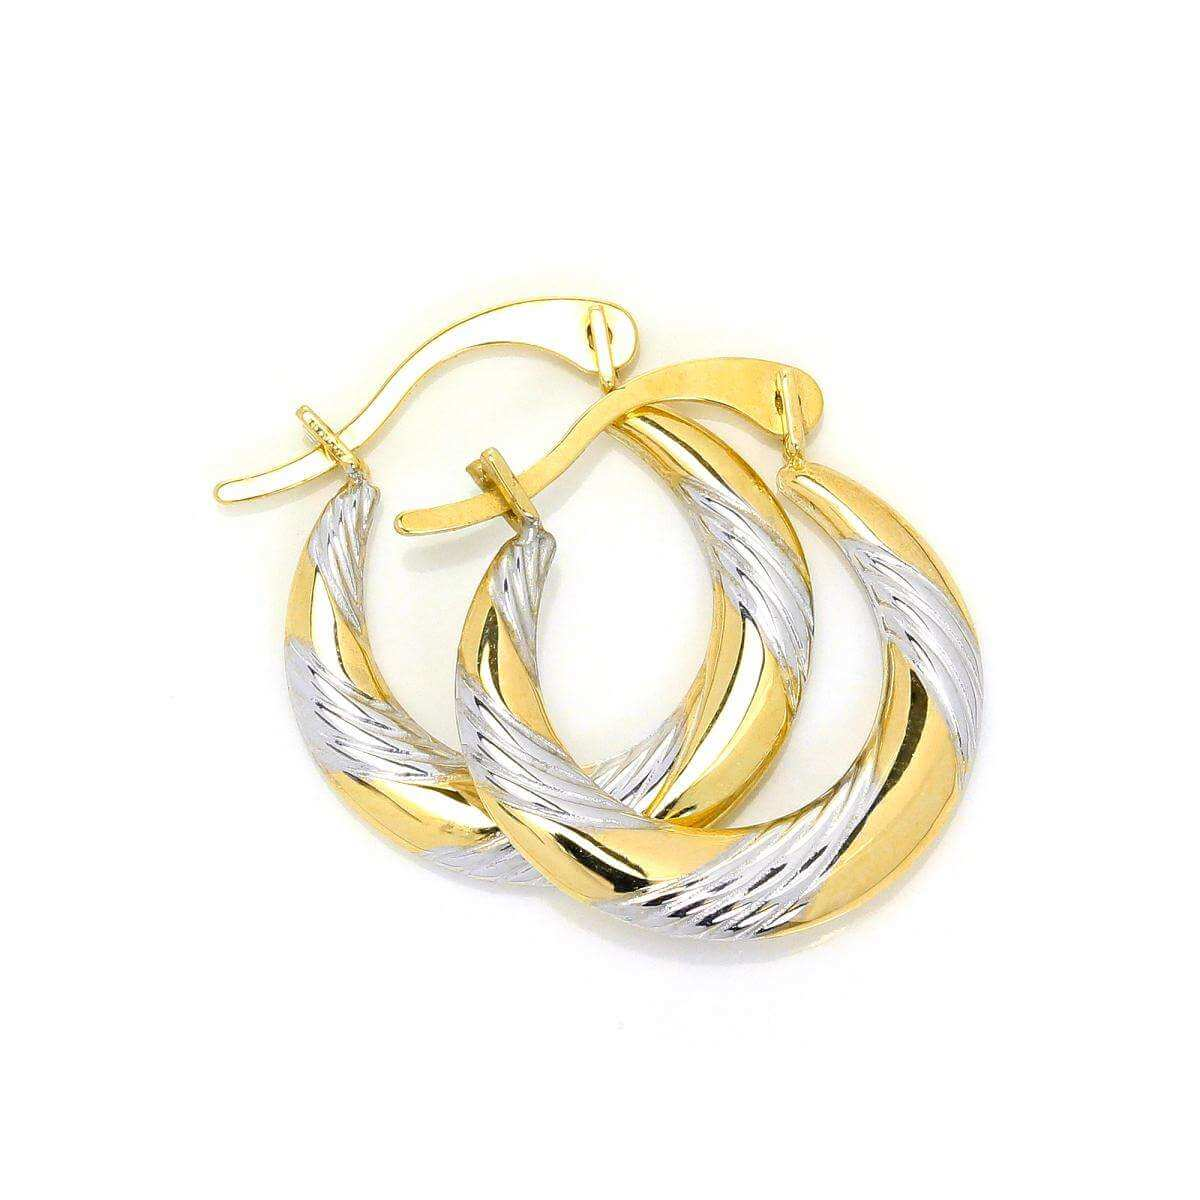 Small 9ct White & Yellow Gold Twisted Creole Hoop Earrings